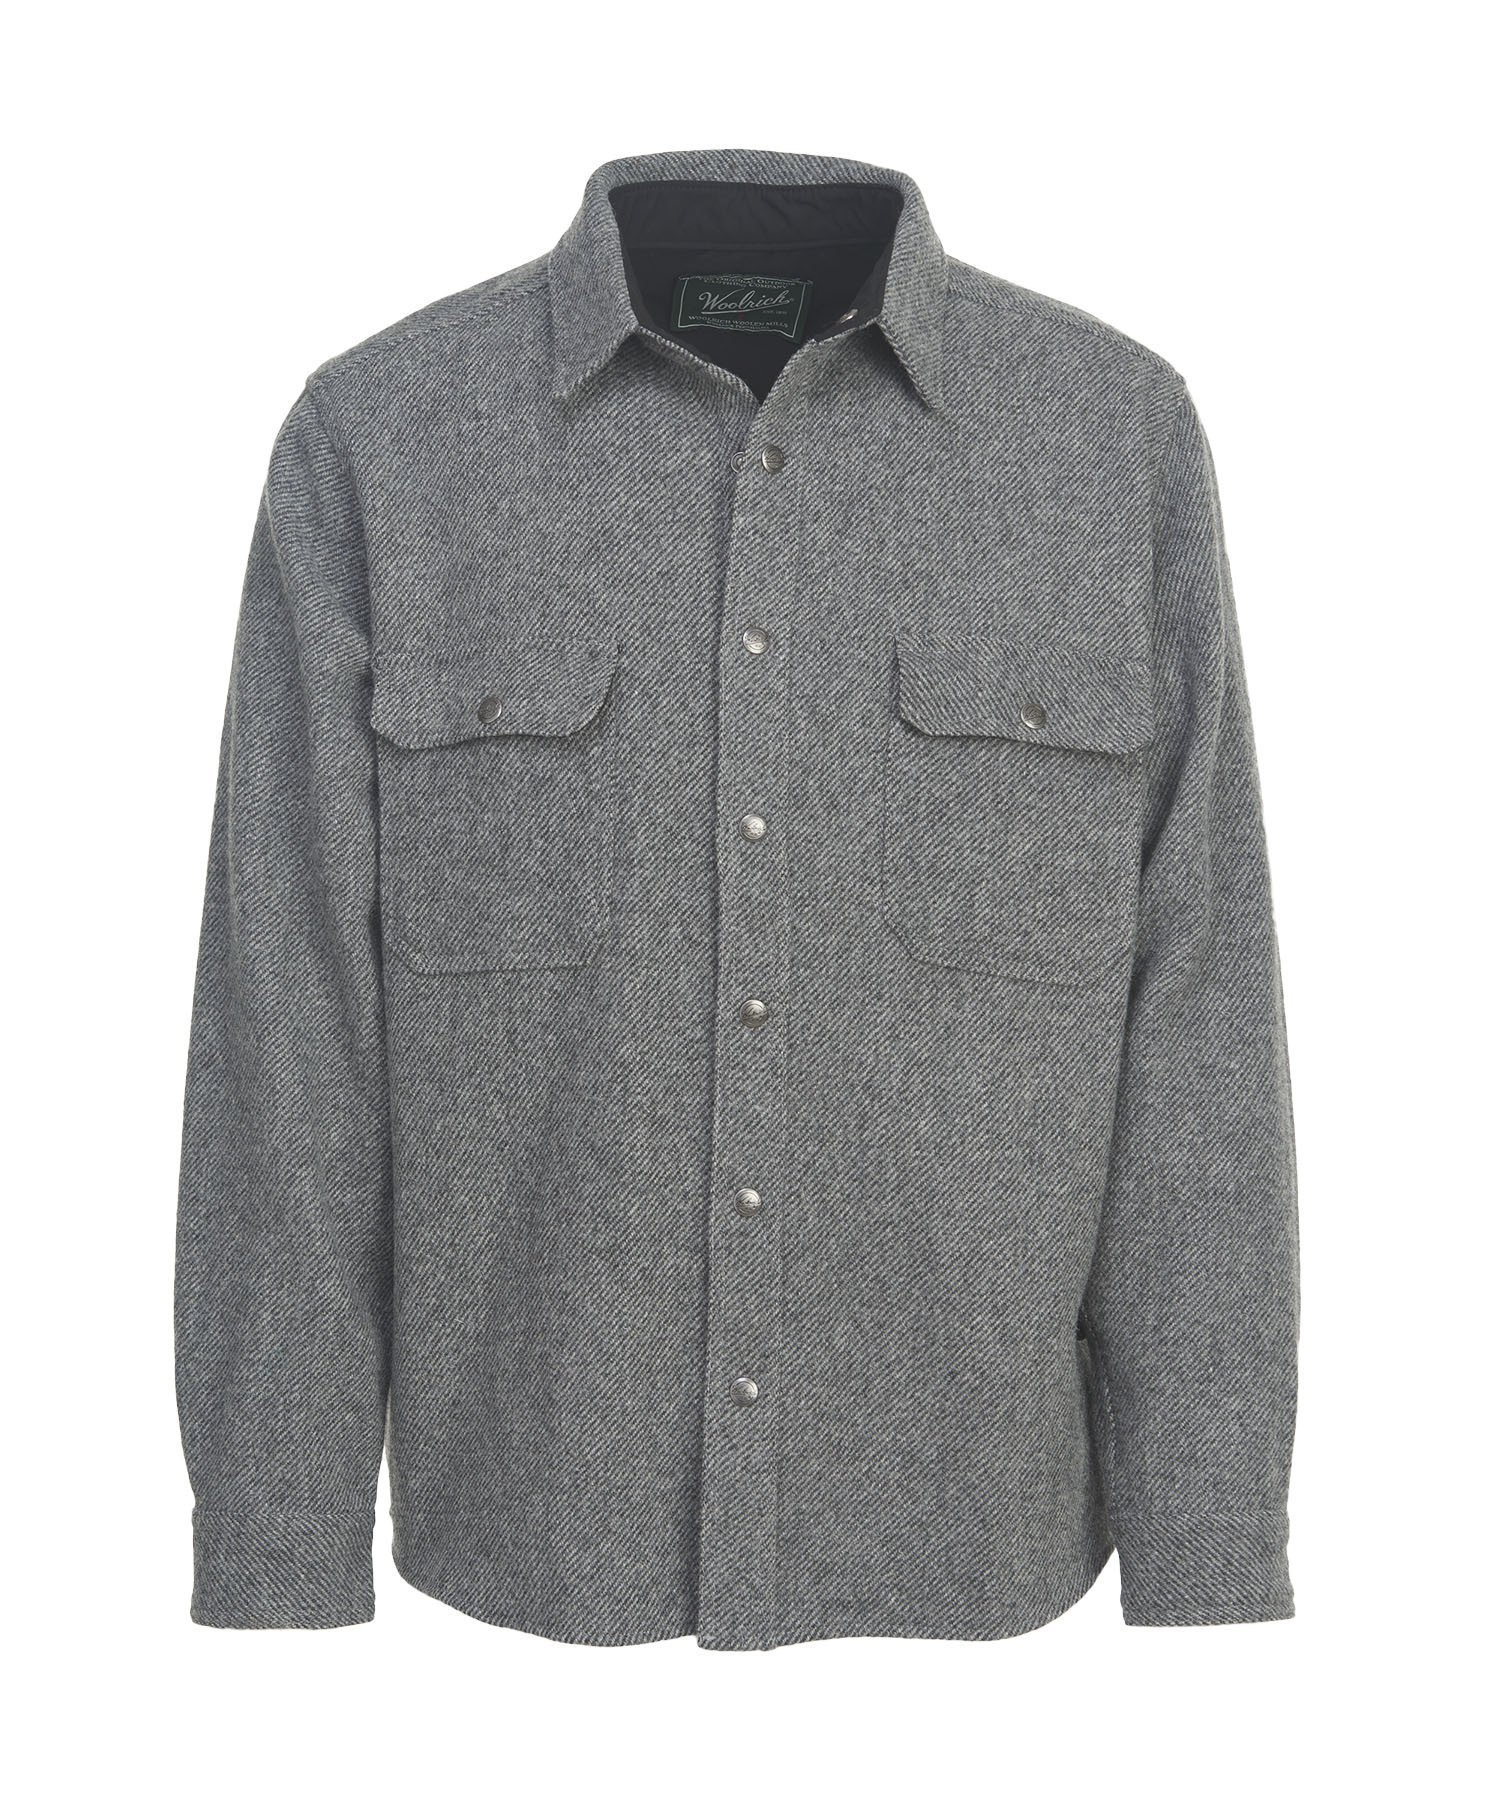 Woolrich Men's Wool Alaskan Shirt, New Gray, X-Large